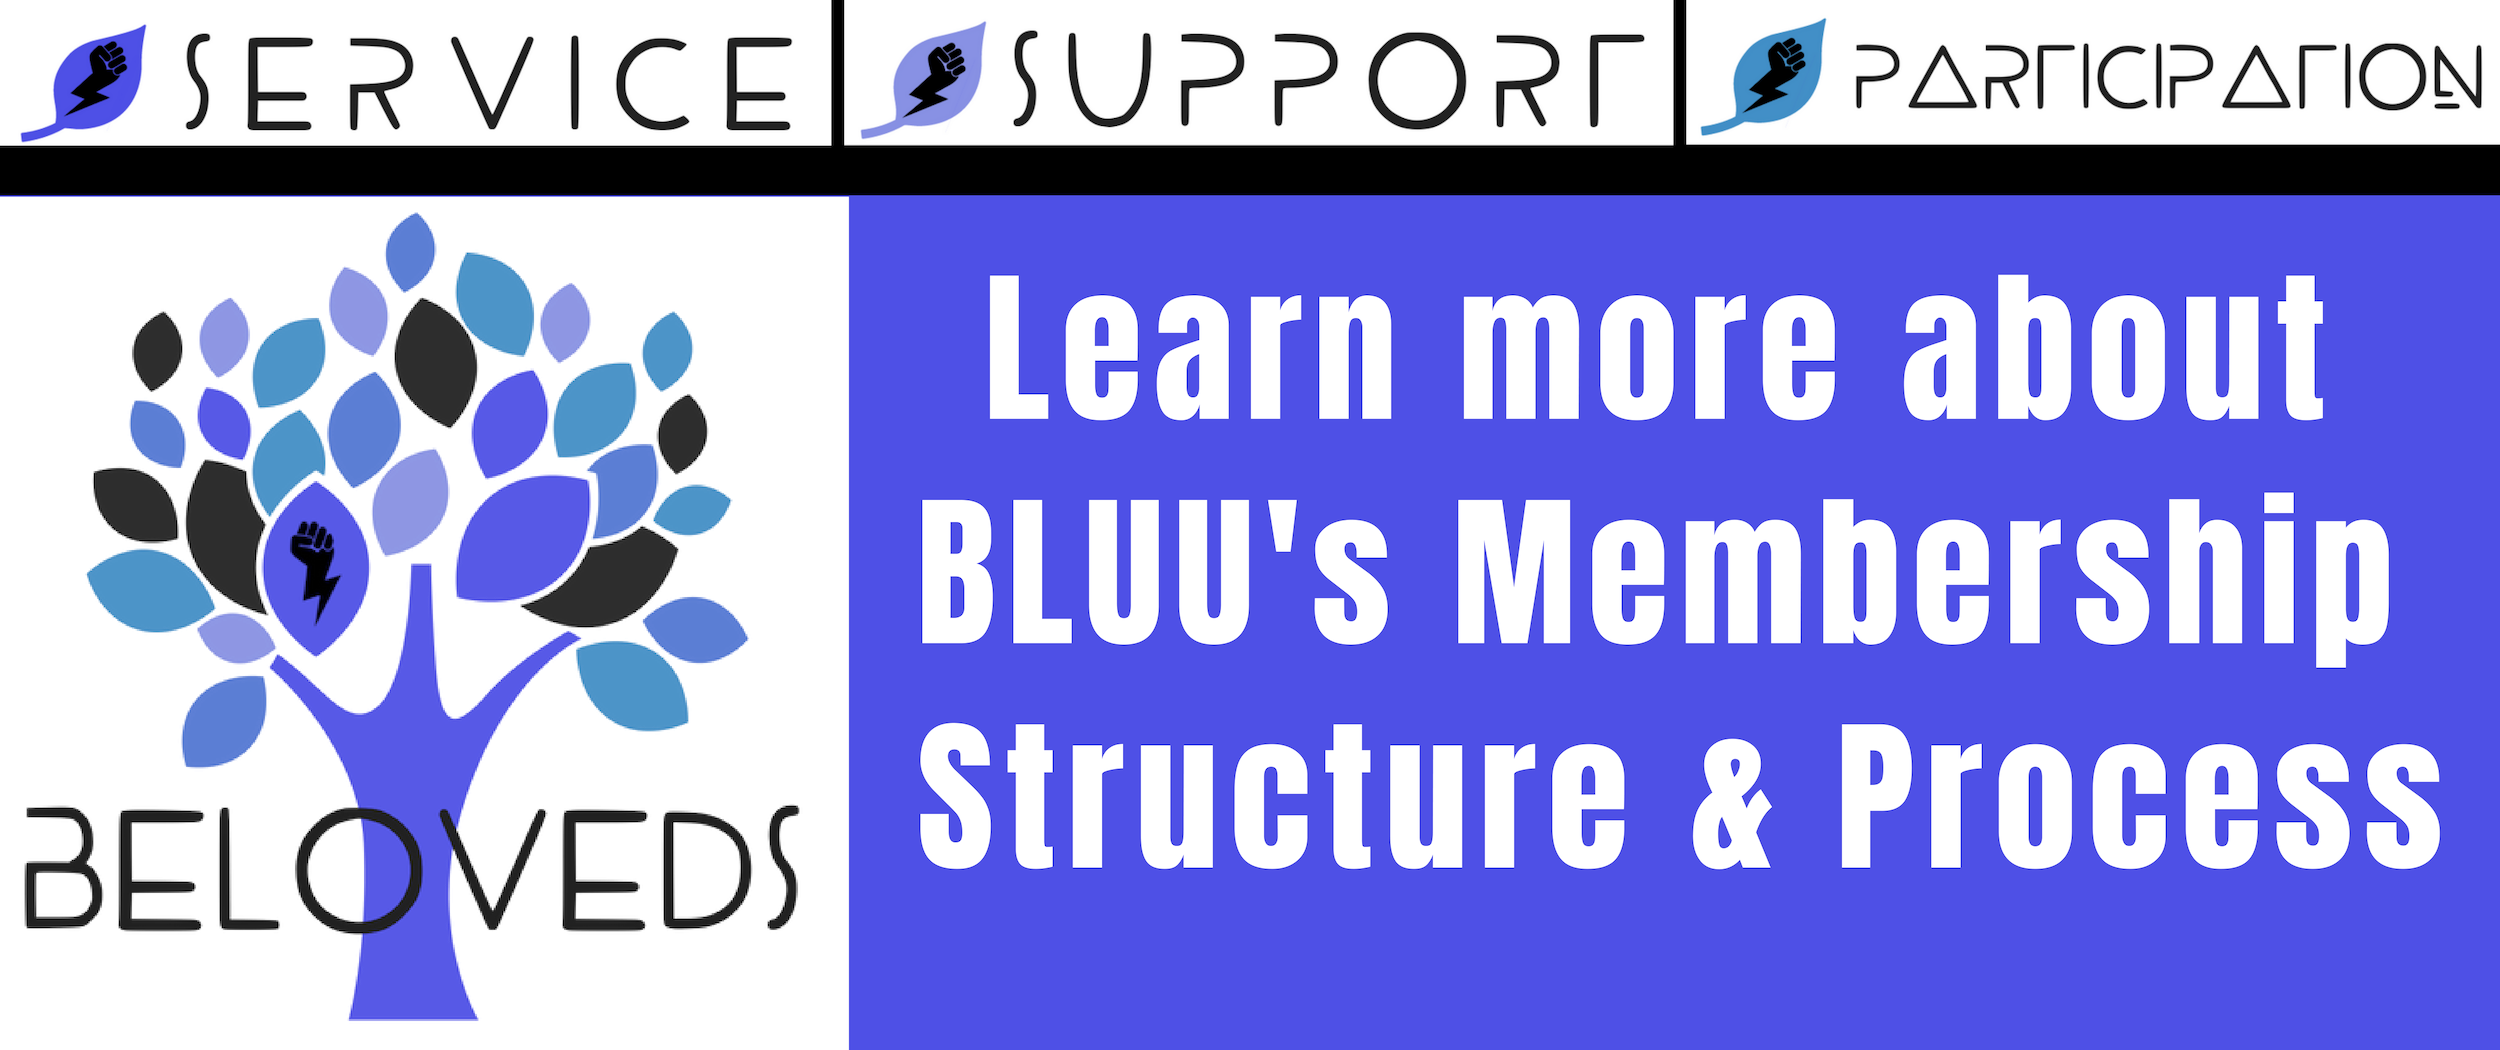 New BasicMembership Website Header.png